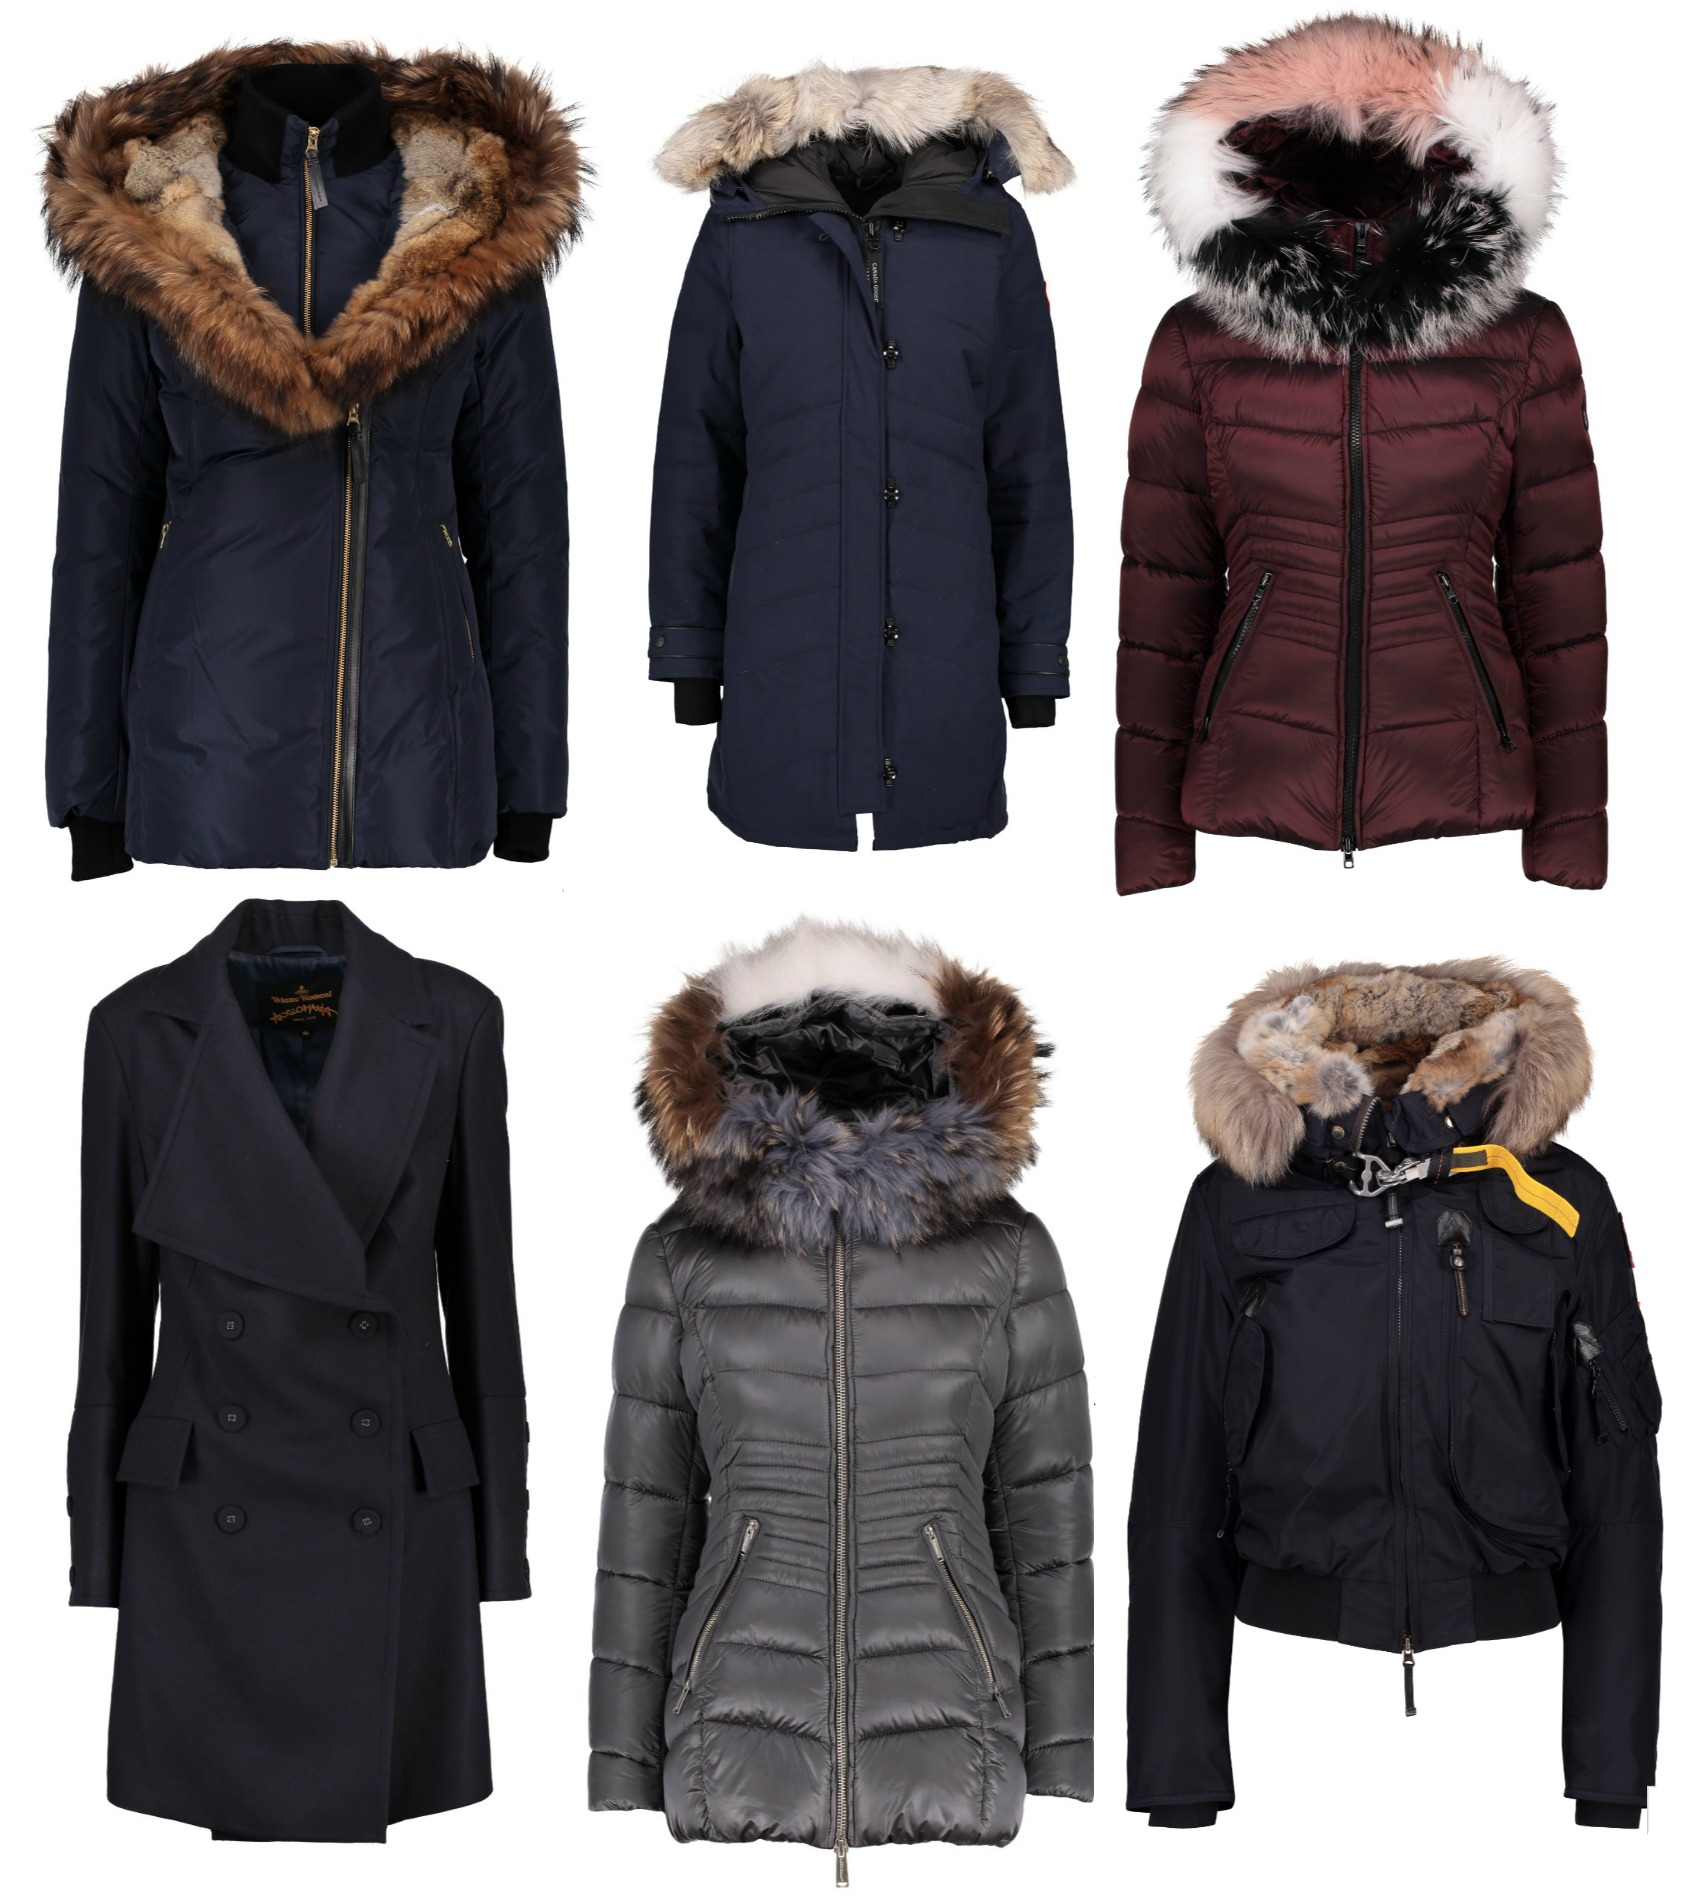 Froccella Coats